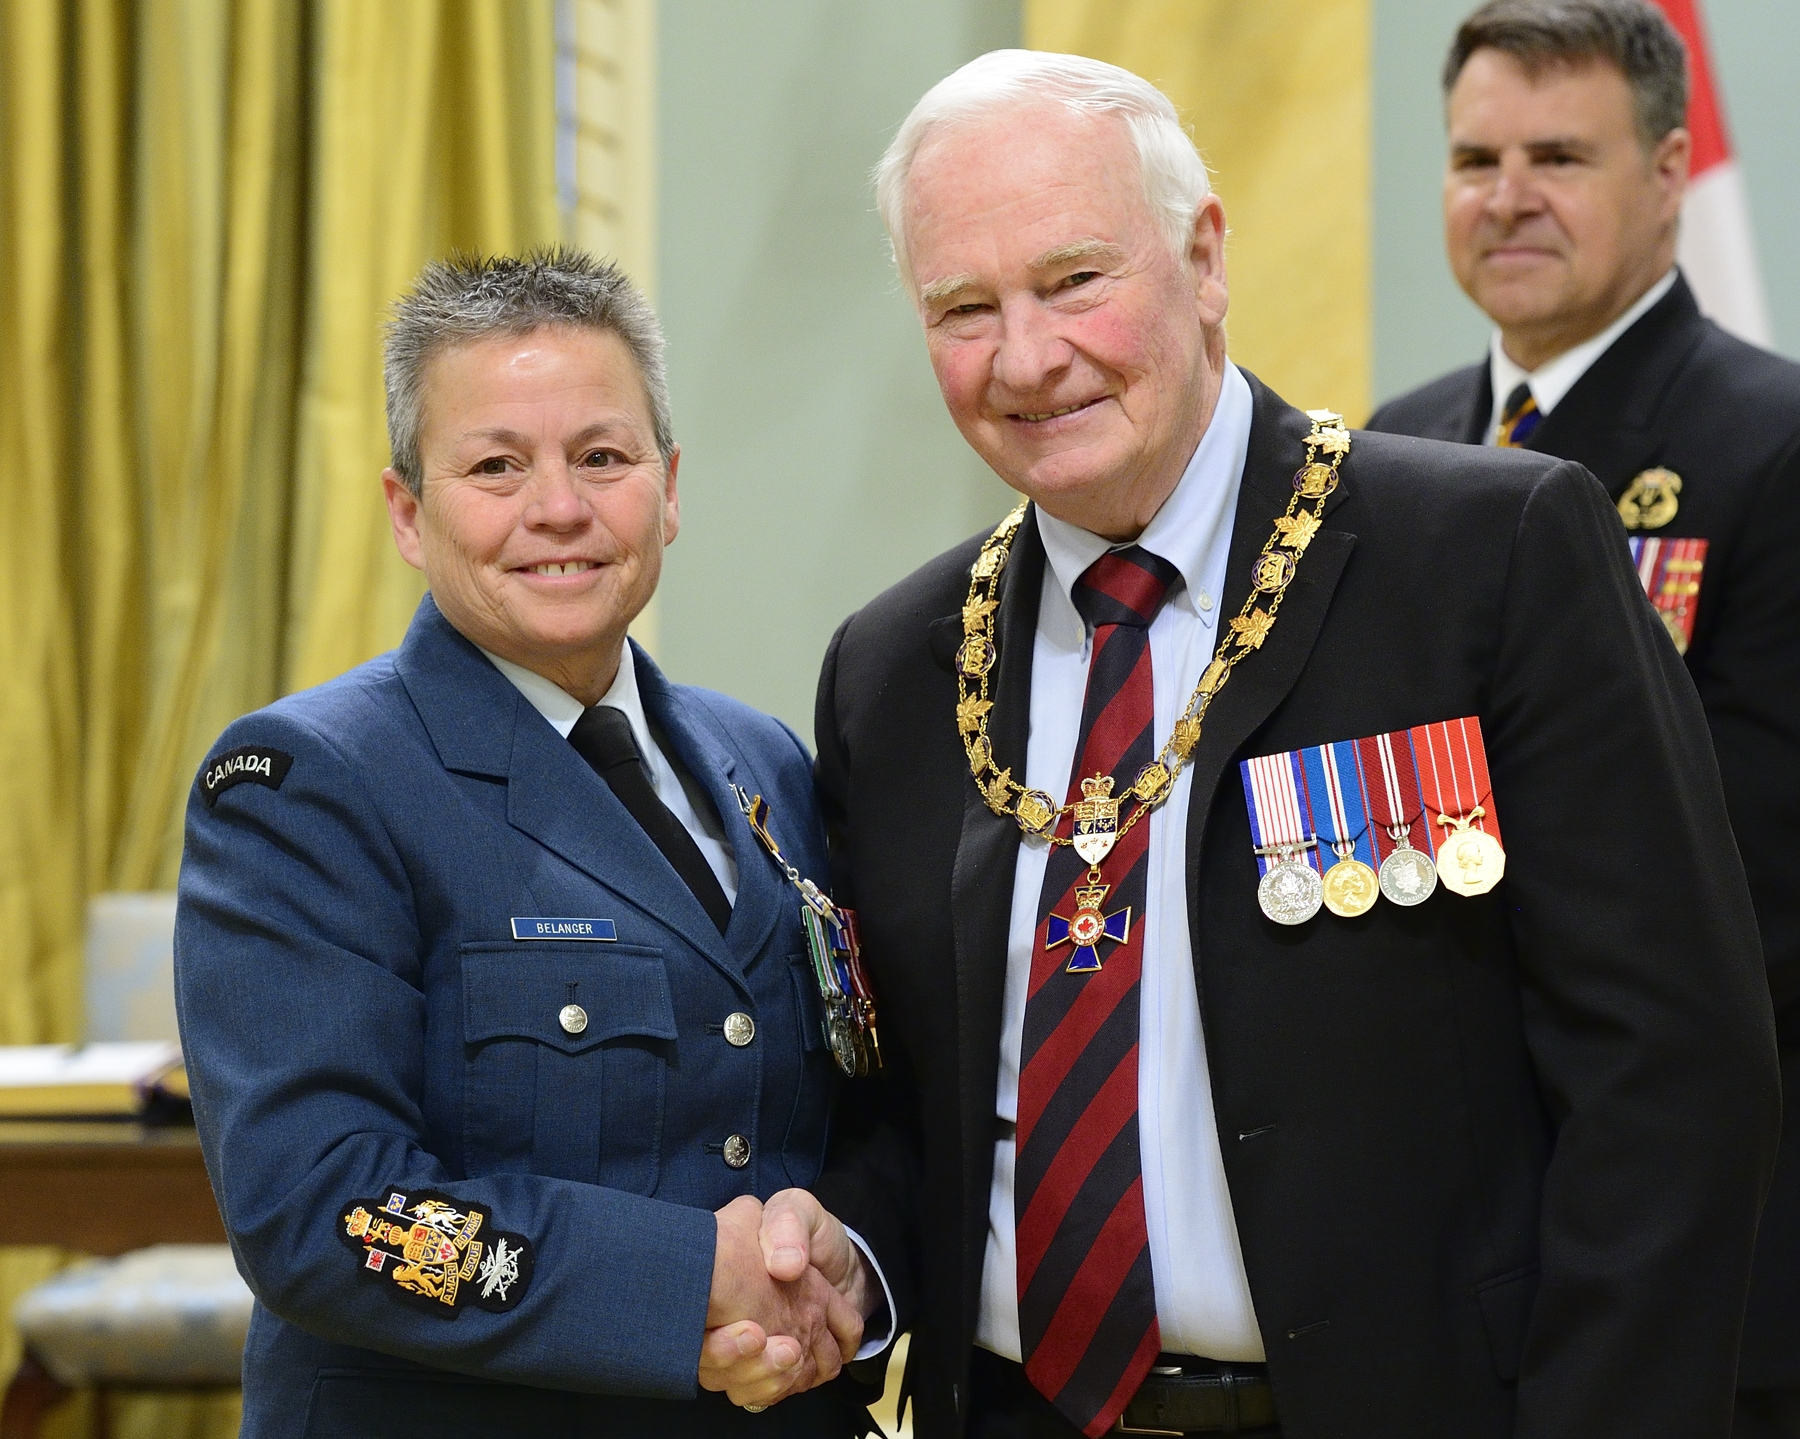 Governor General and Commander-in-Chief of Canada David Johnston presents the Order of Military Merit to Chief Warrant Officer Necole Elizabeth Belanger, MMM, CD 